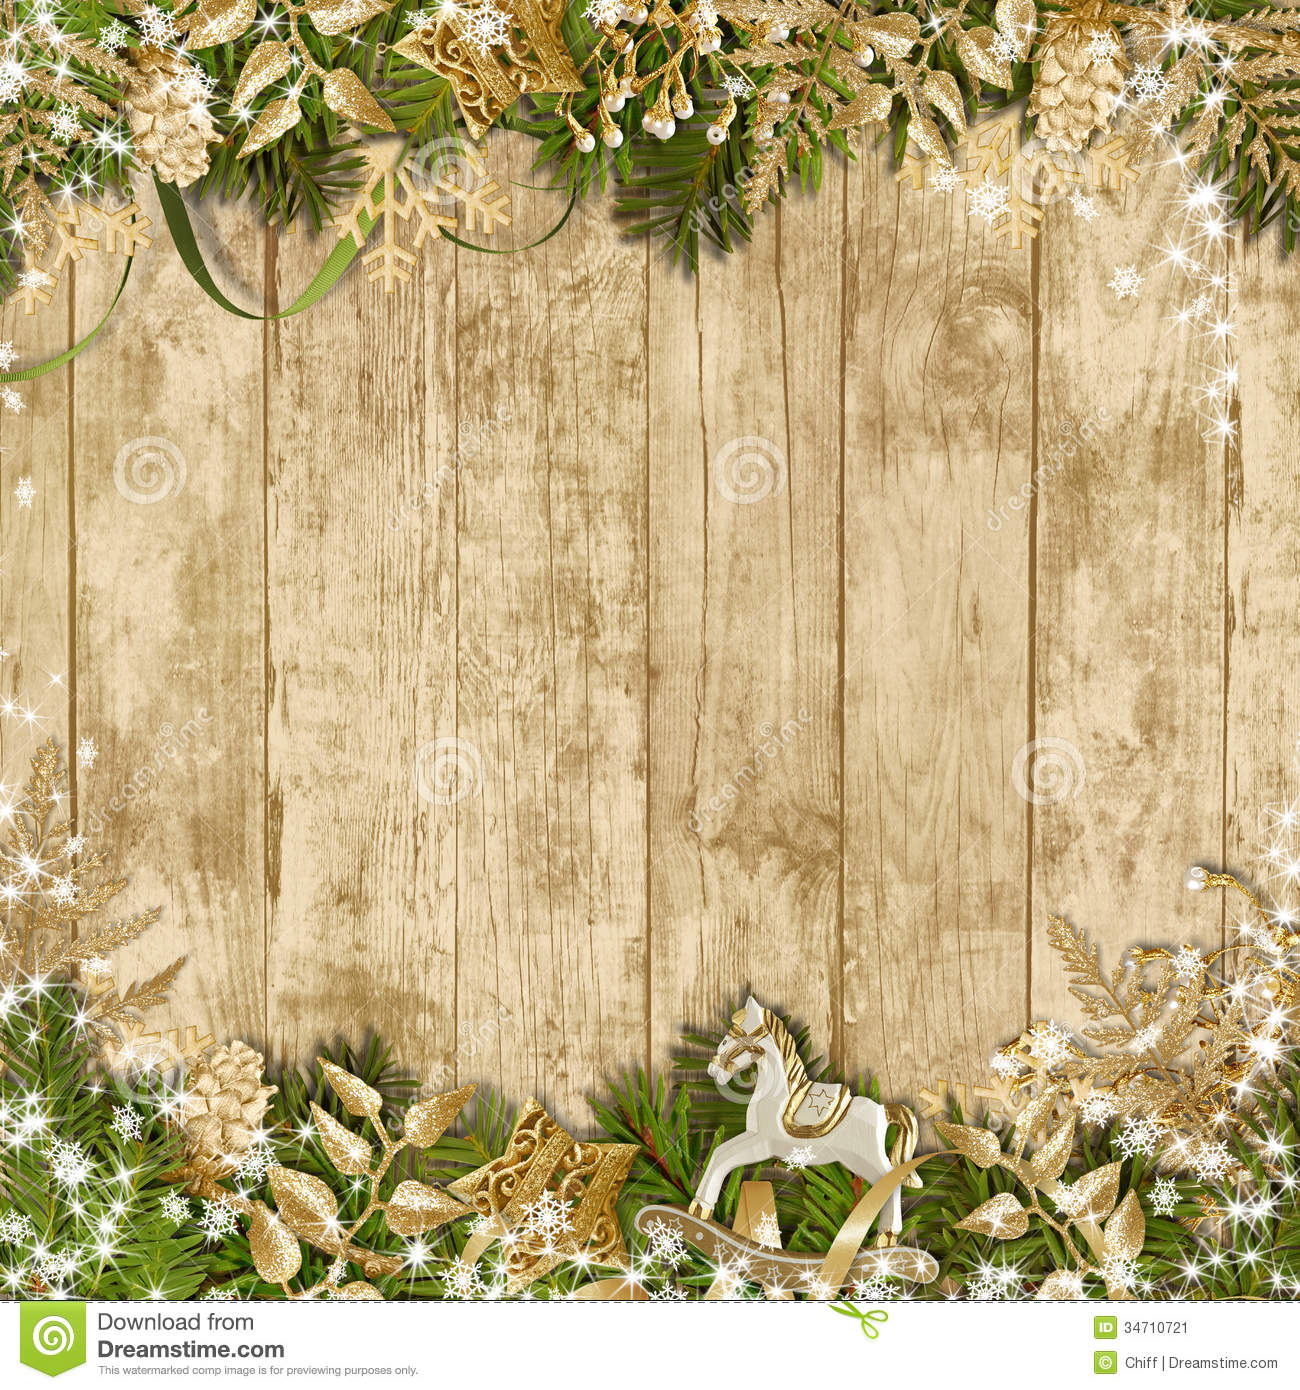 Christmas Decorations Wood Wallpaper